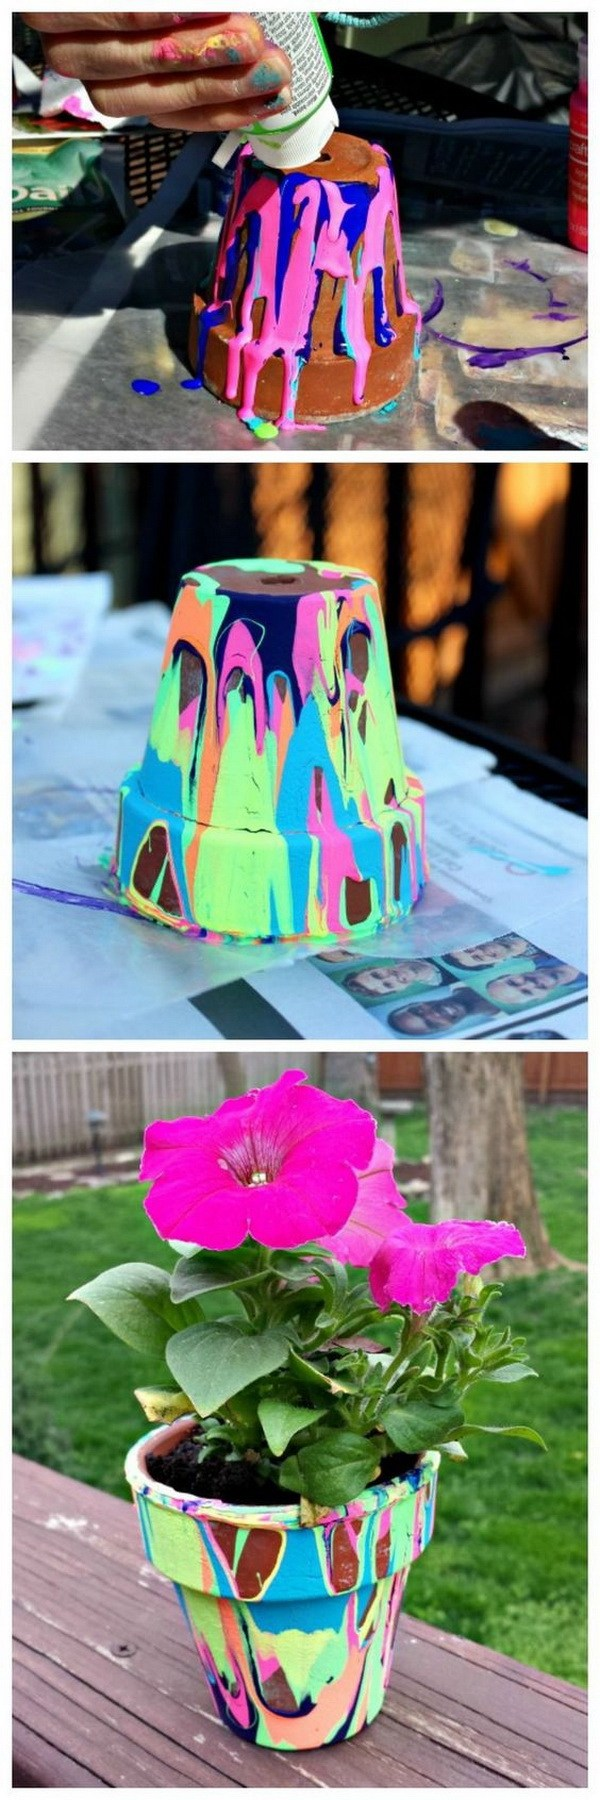 2-diy-ideas-to-decorate-with-terracotta-pots (1)